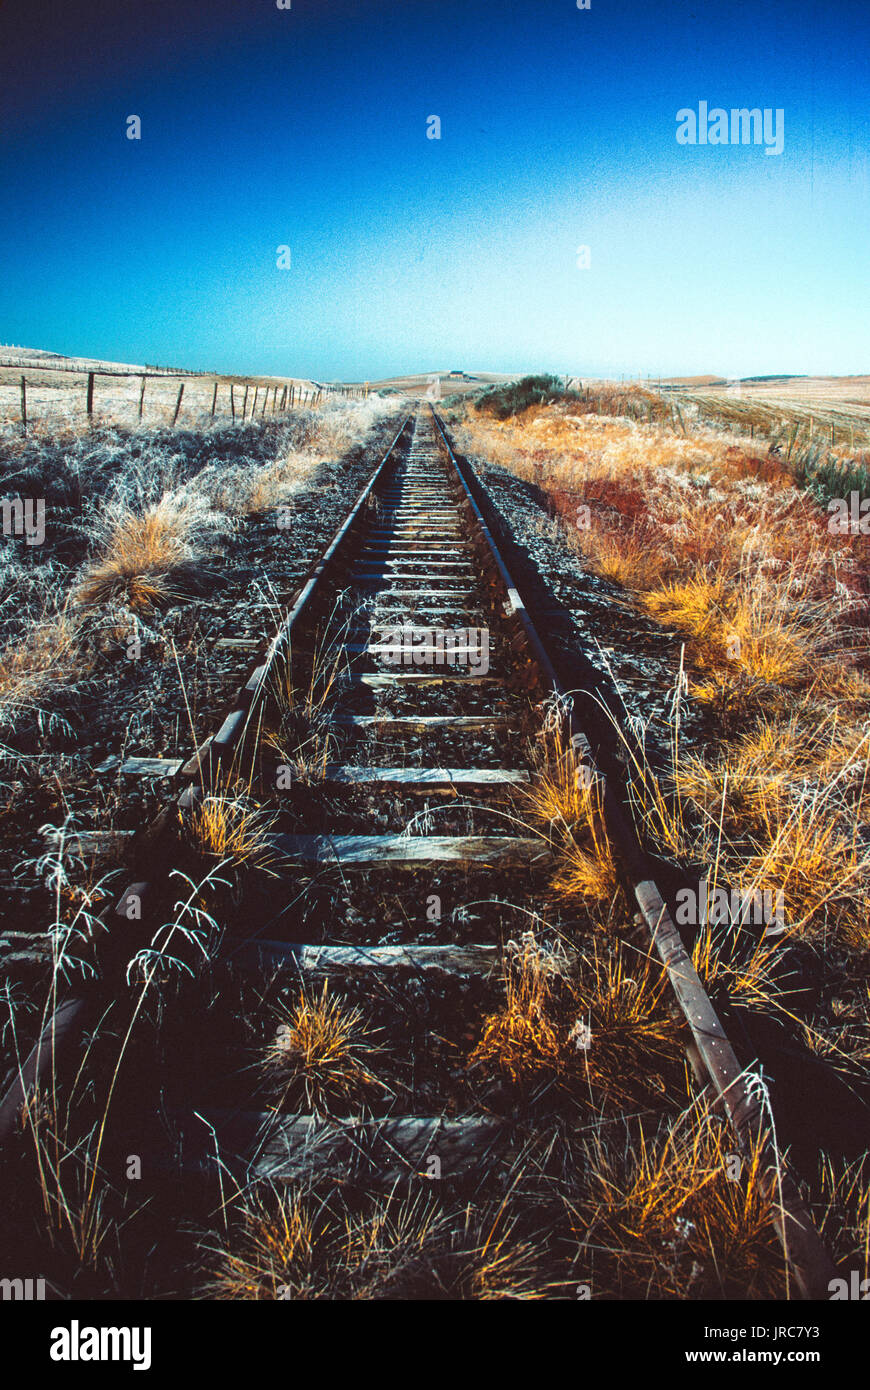 Disused railway tracks in the countryside - Stock Image